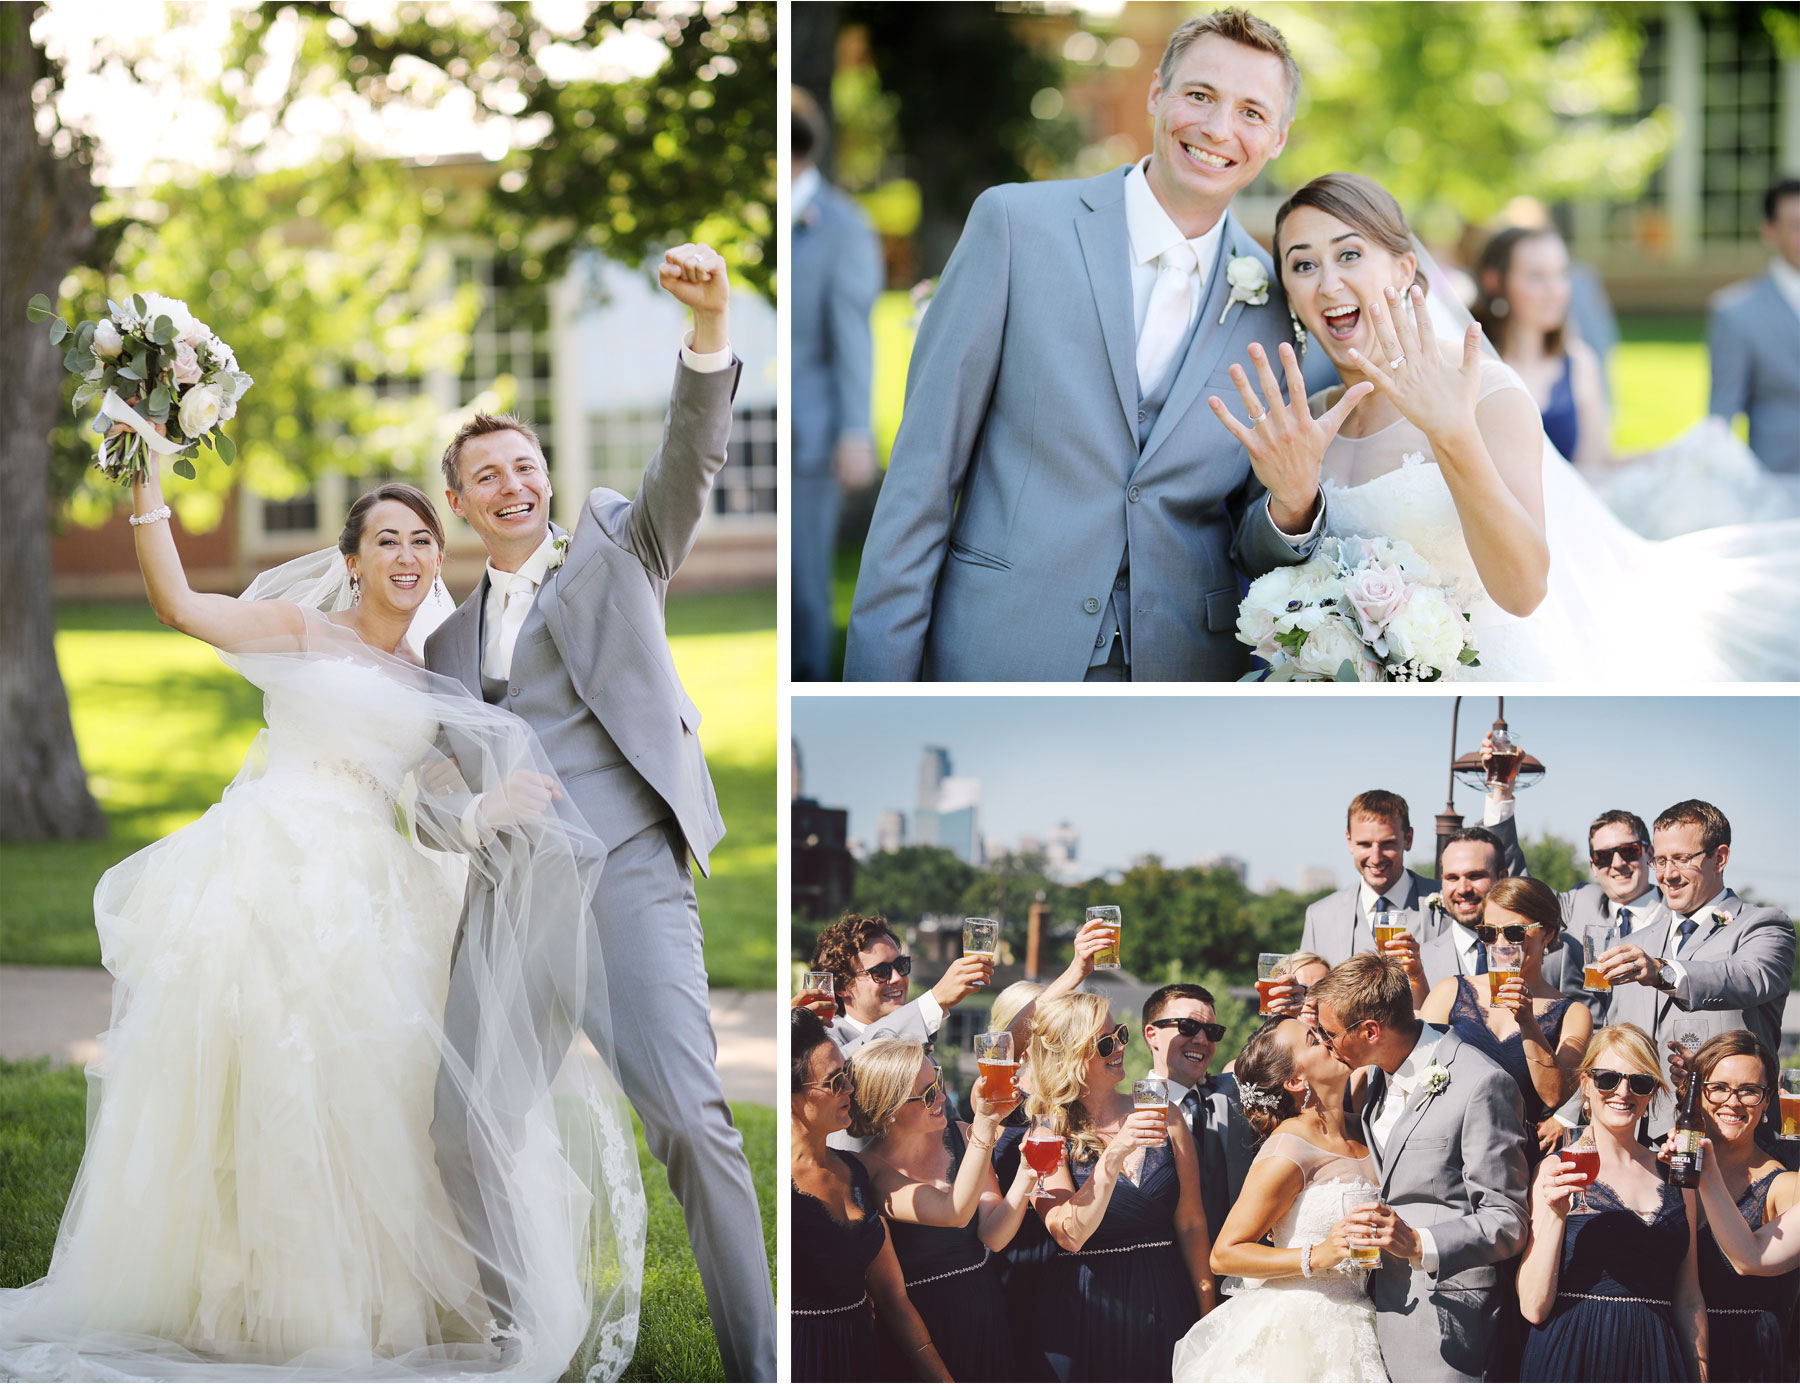 15-Minneapolis-Minnesota-Wedding-Photography-by-Vick-Photography-Our-Lady-of-Grace-Church-Brigid-and-Ernie.jpg